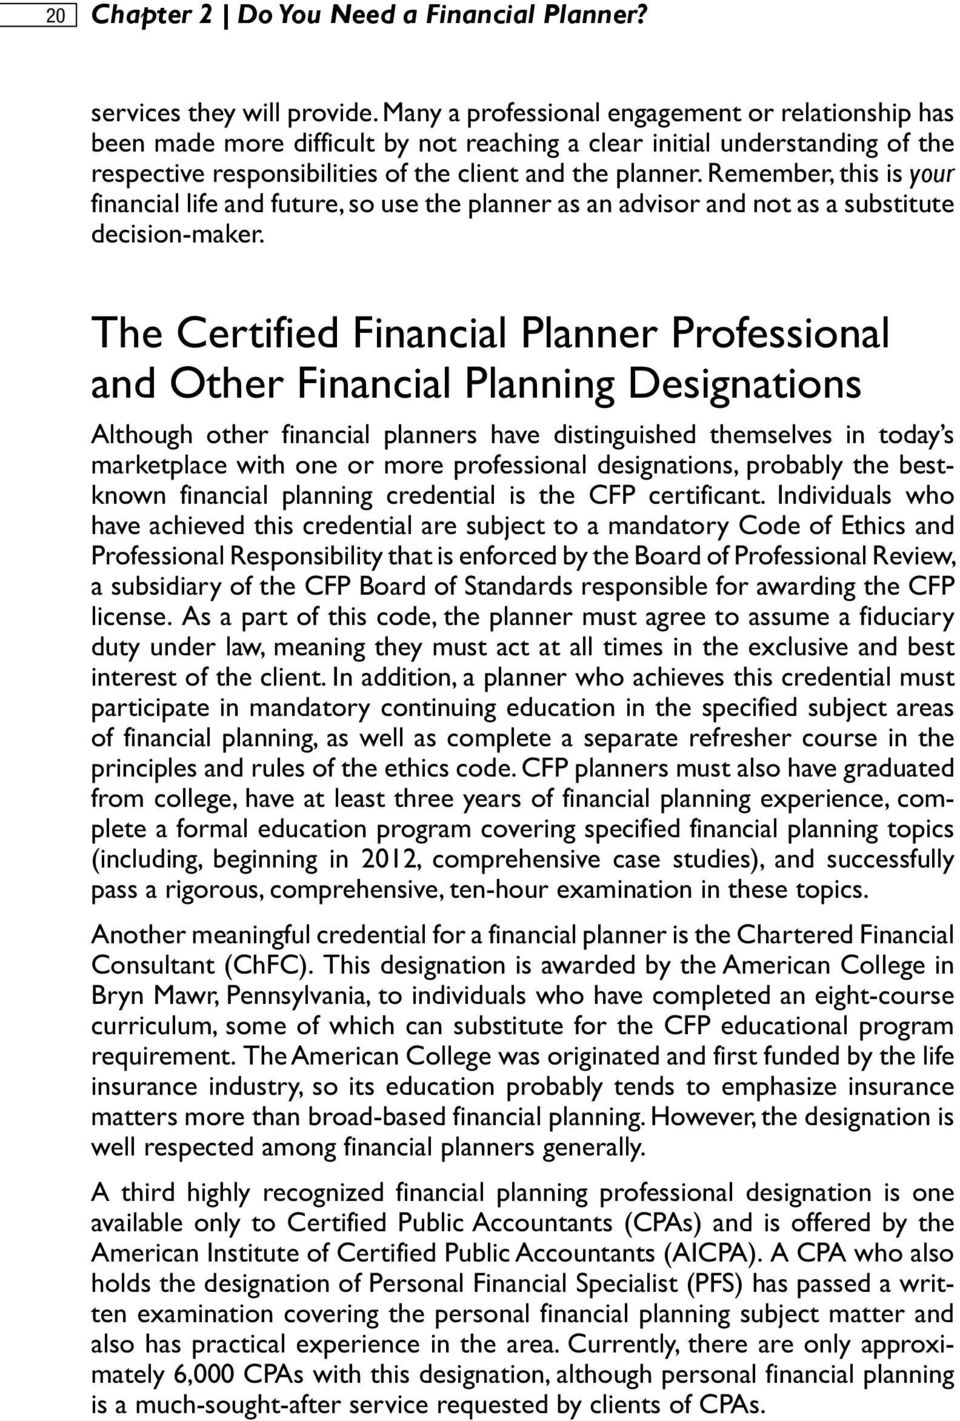 Remember, this is your financial life and future, so use the planner as an advisor and not as a substitute decision-maker.